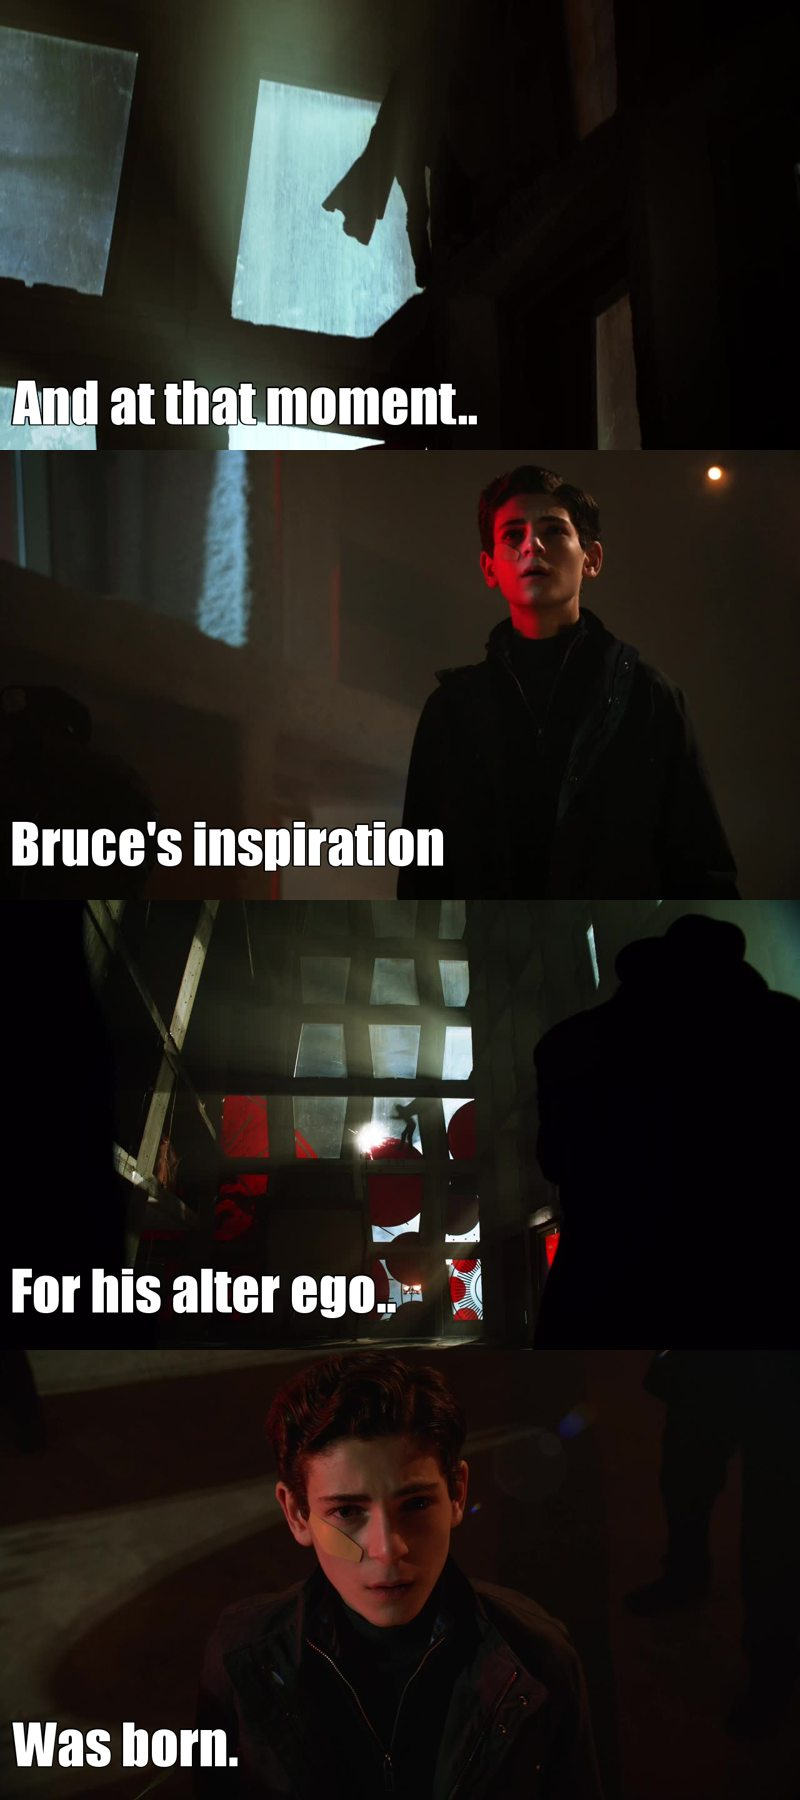 And at that moment, Bruce's inspiration for his alter ego ( Batman ) was born.